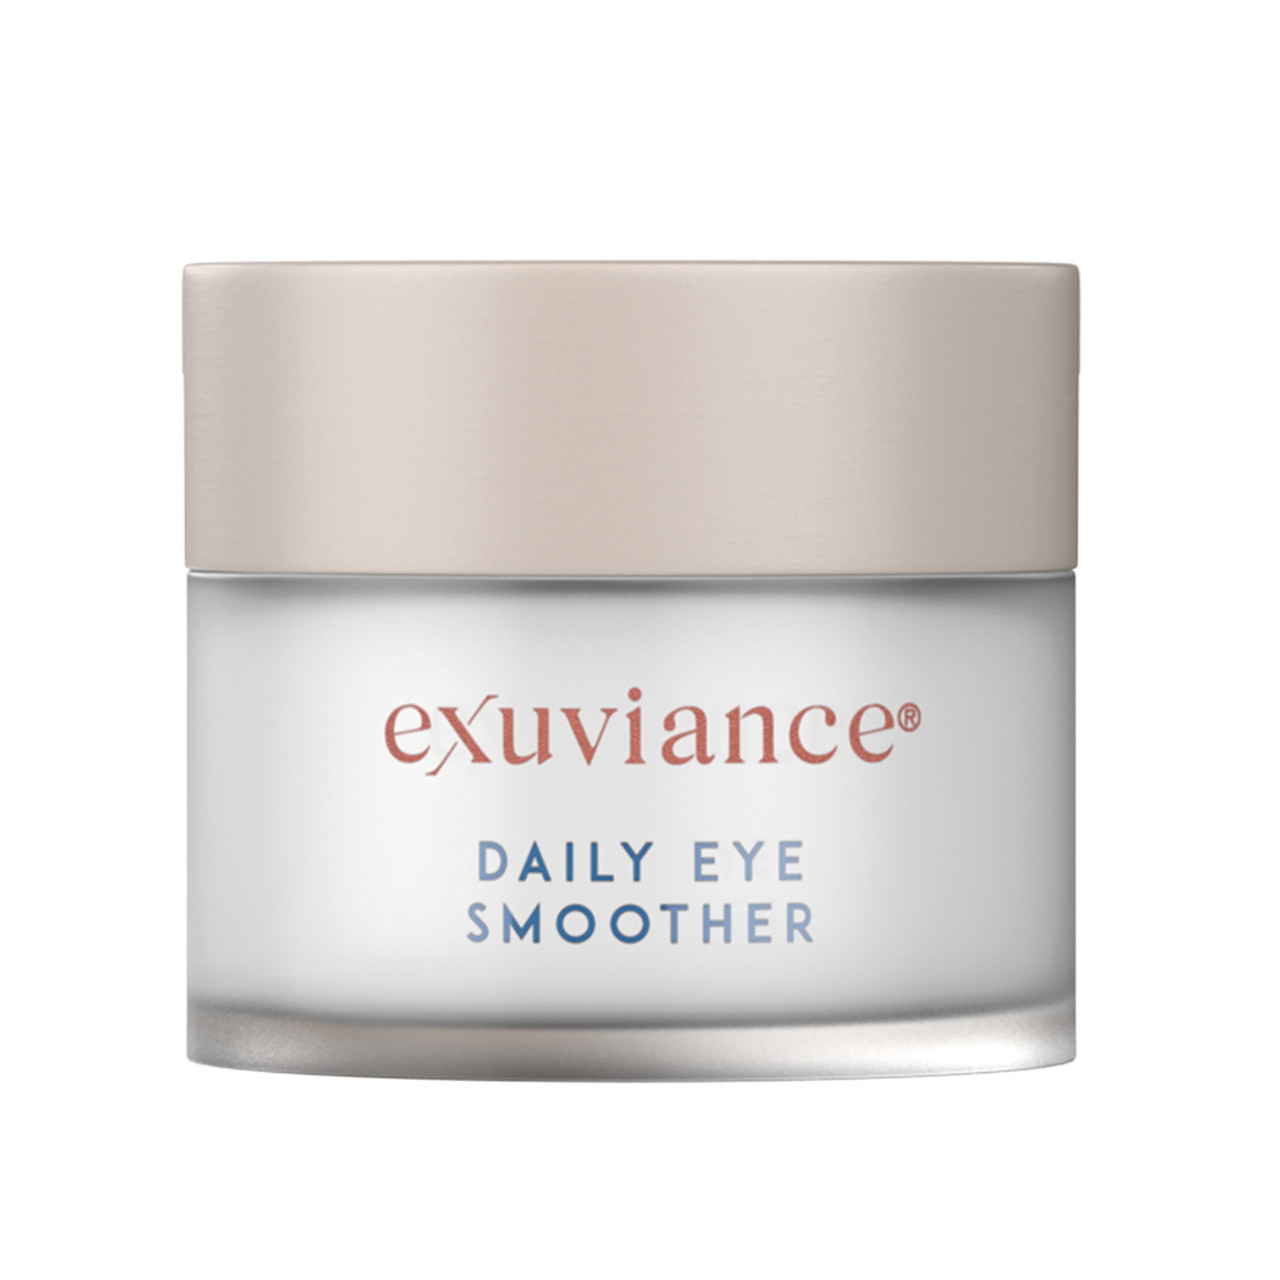 Exuviance Daily Eye Smoother